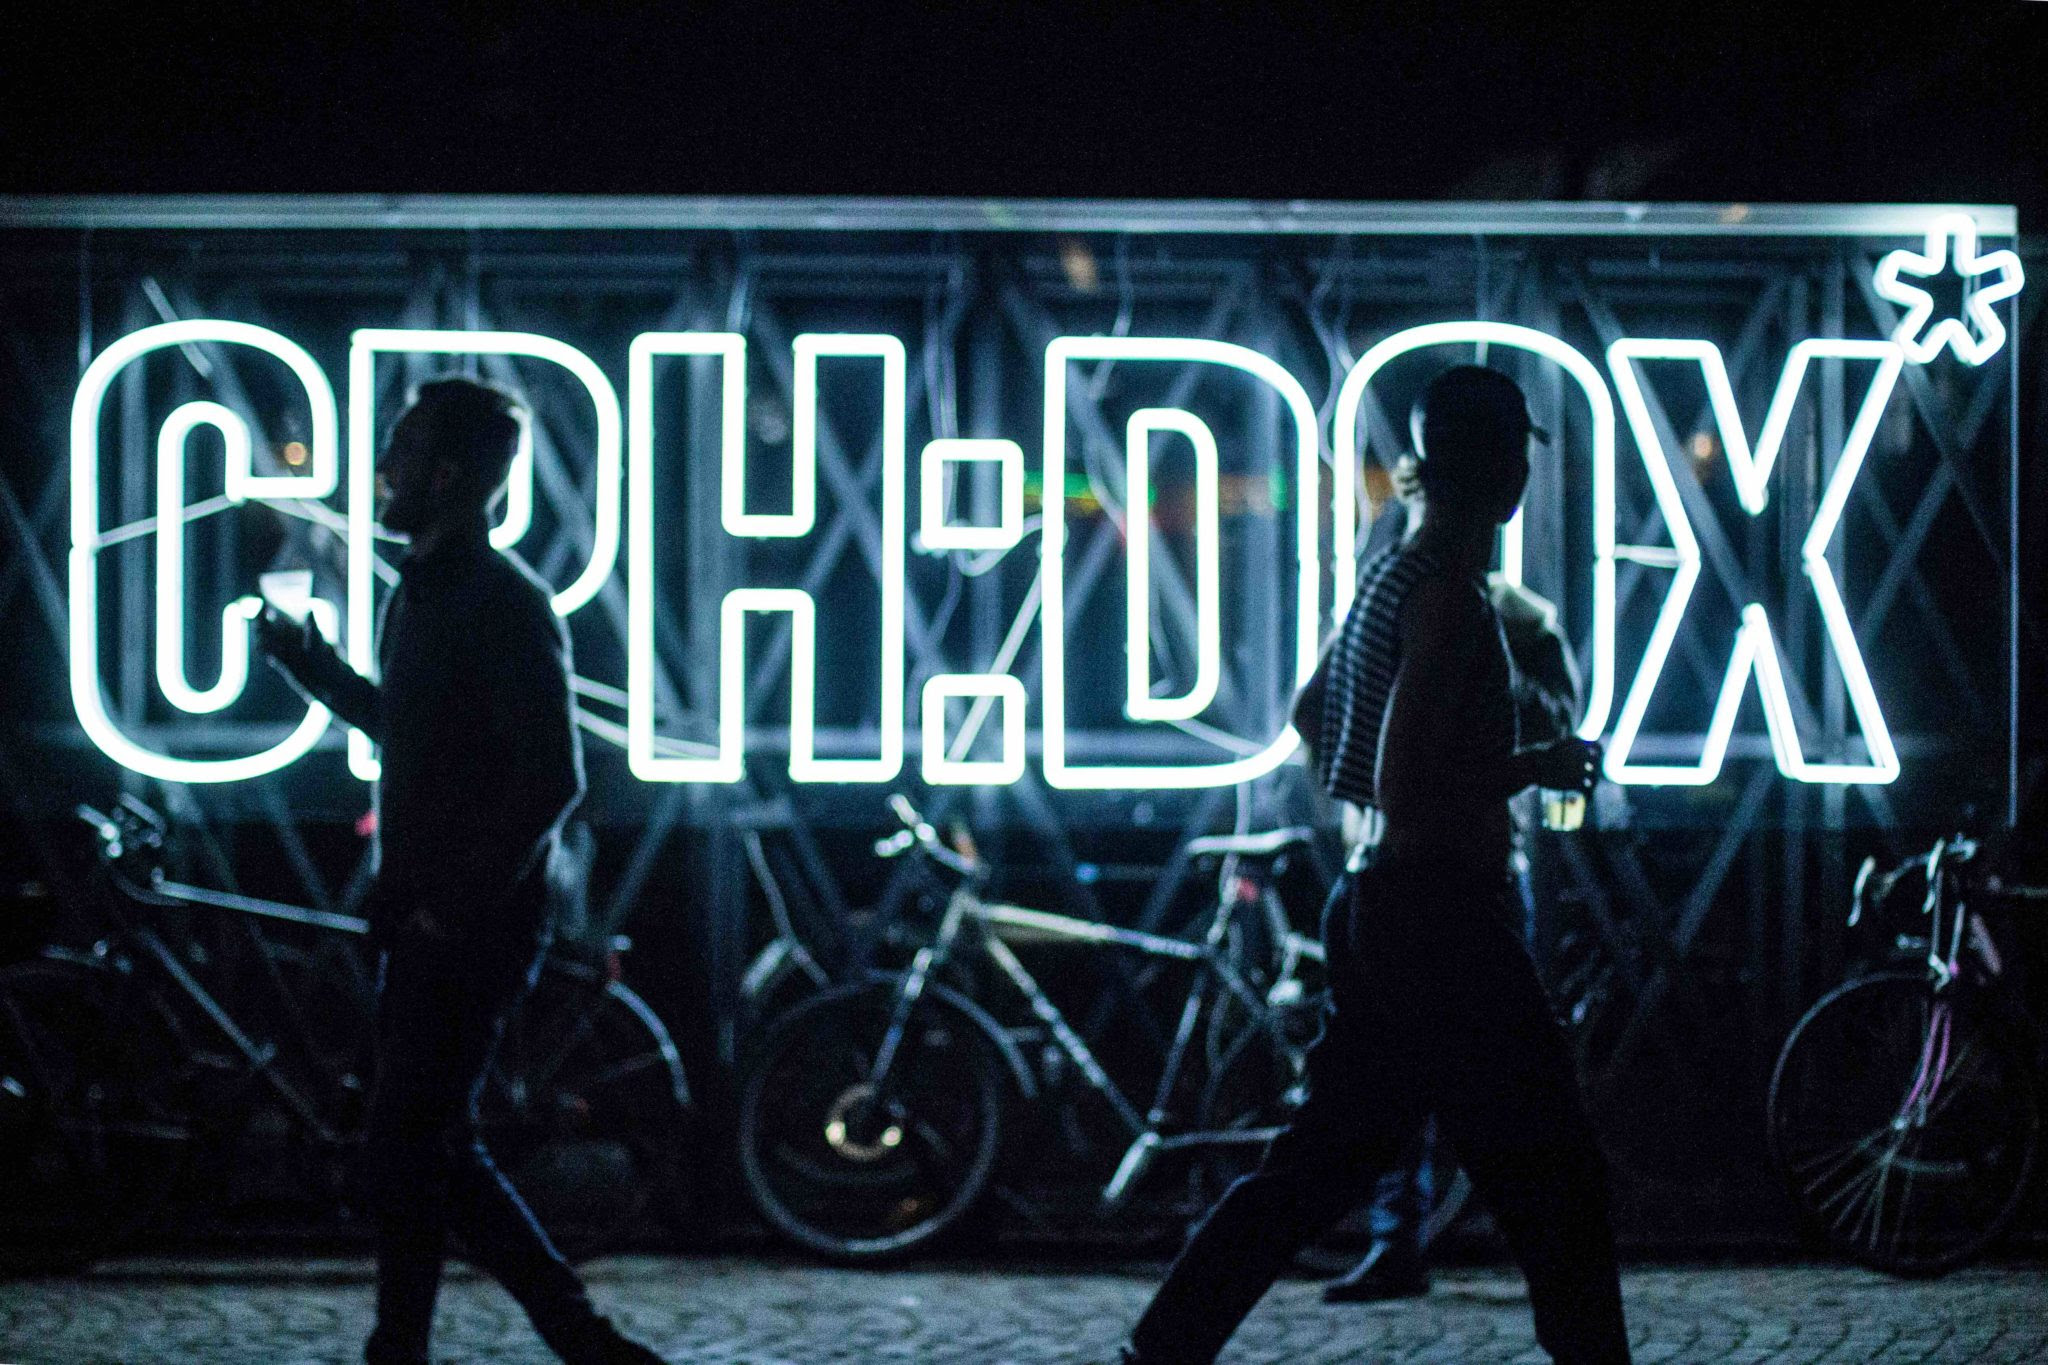 CPH:DOX 2021 will move from March to April